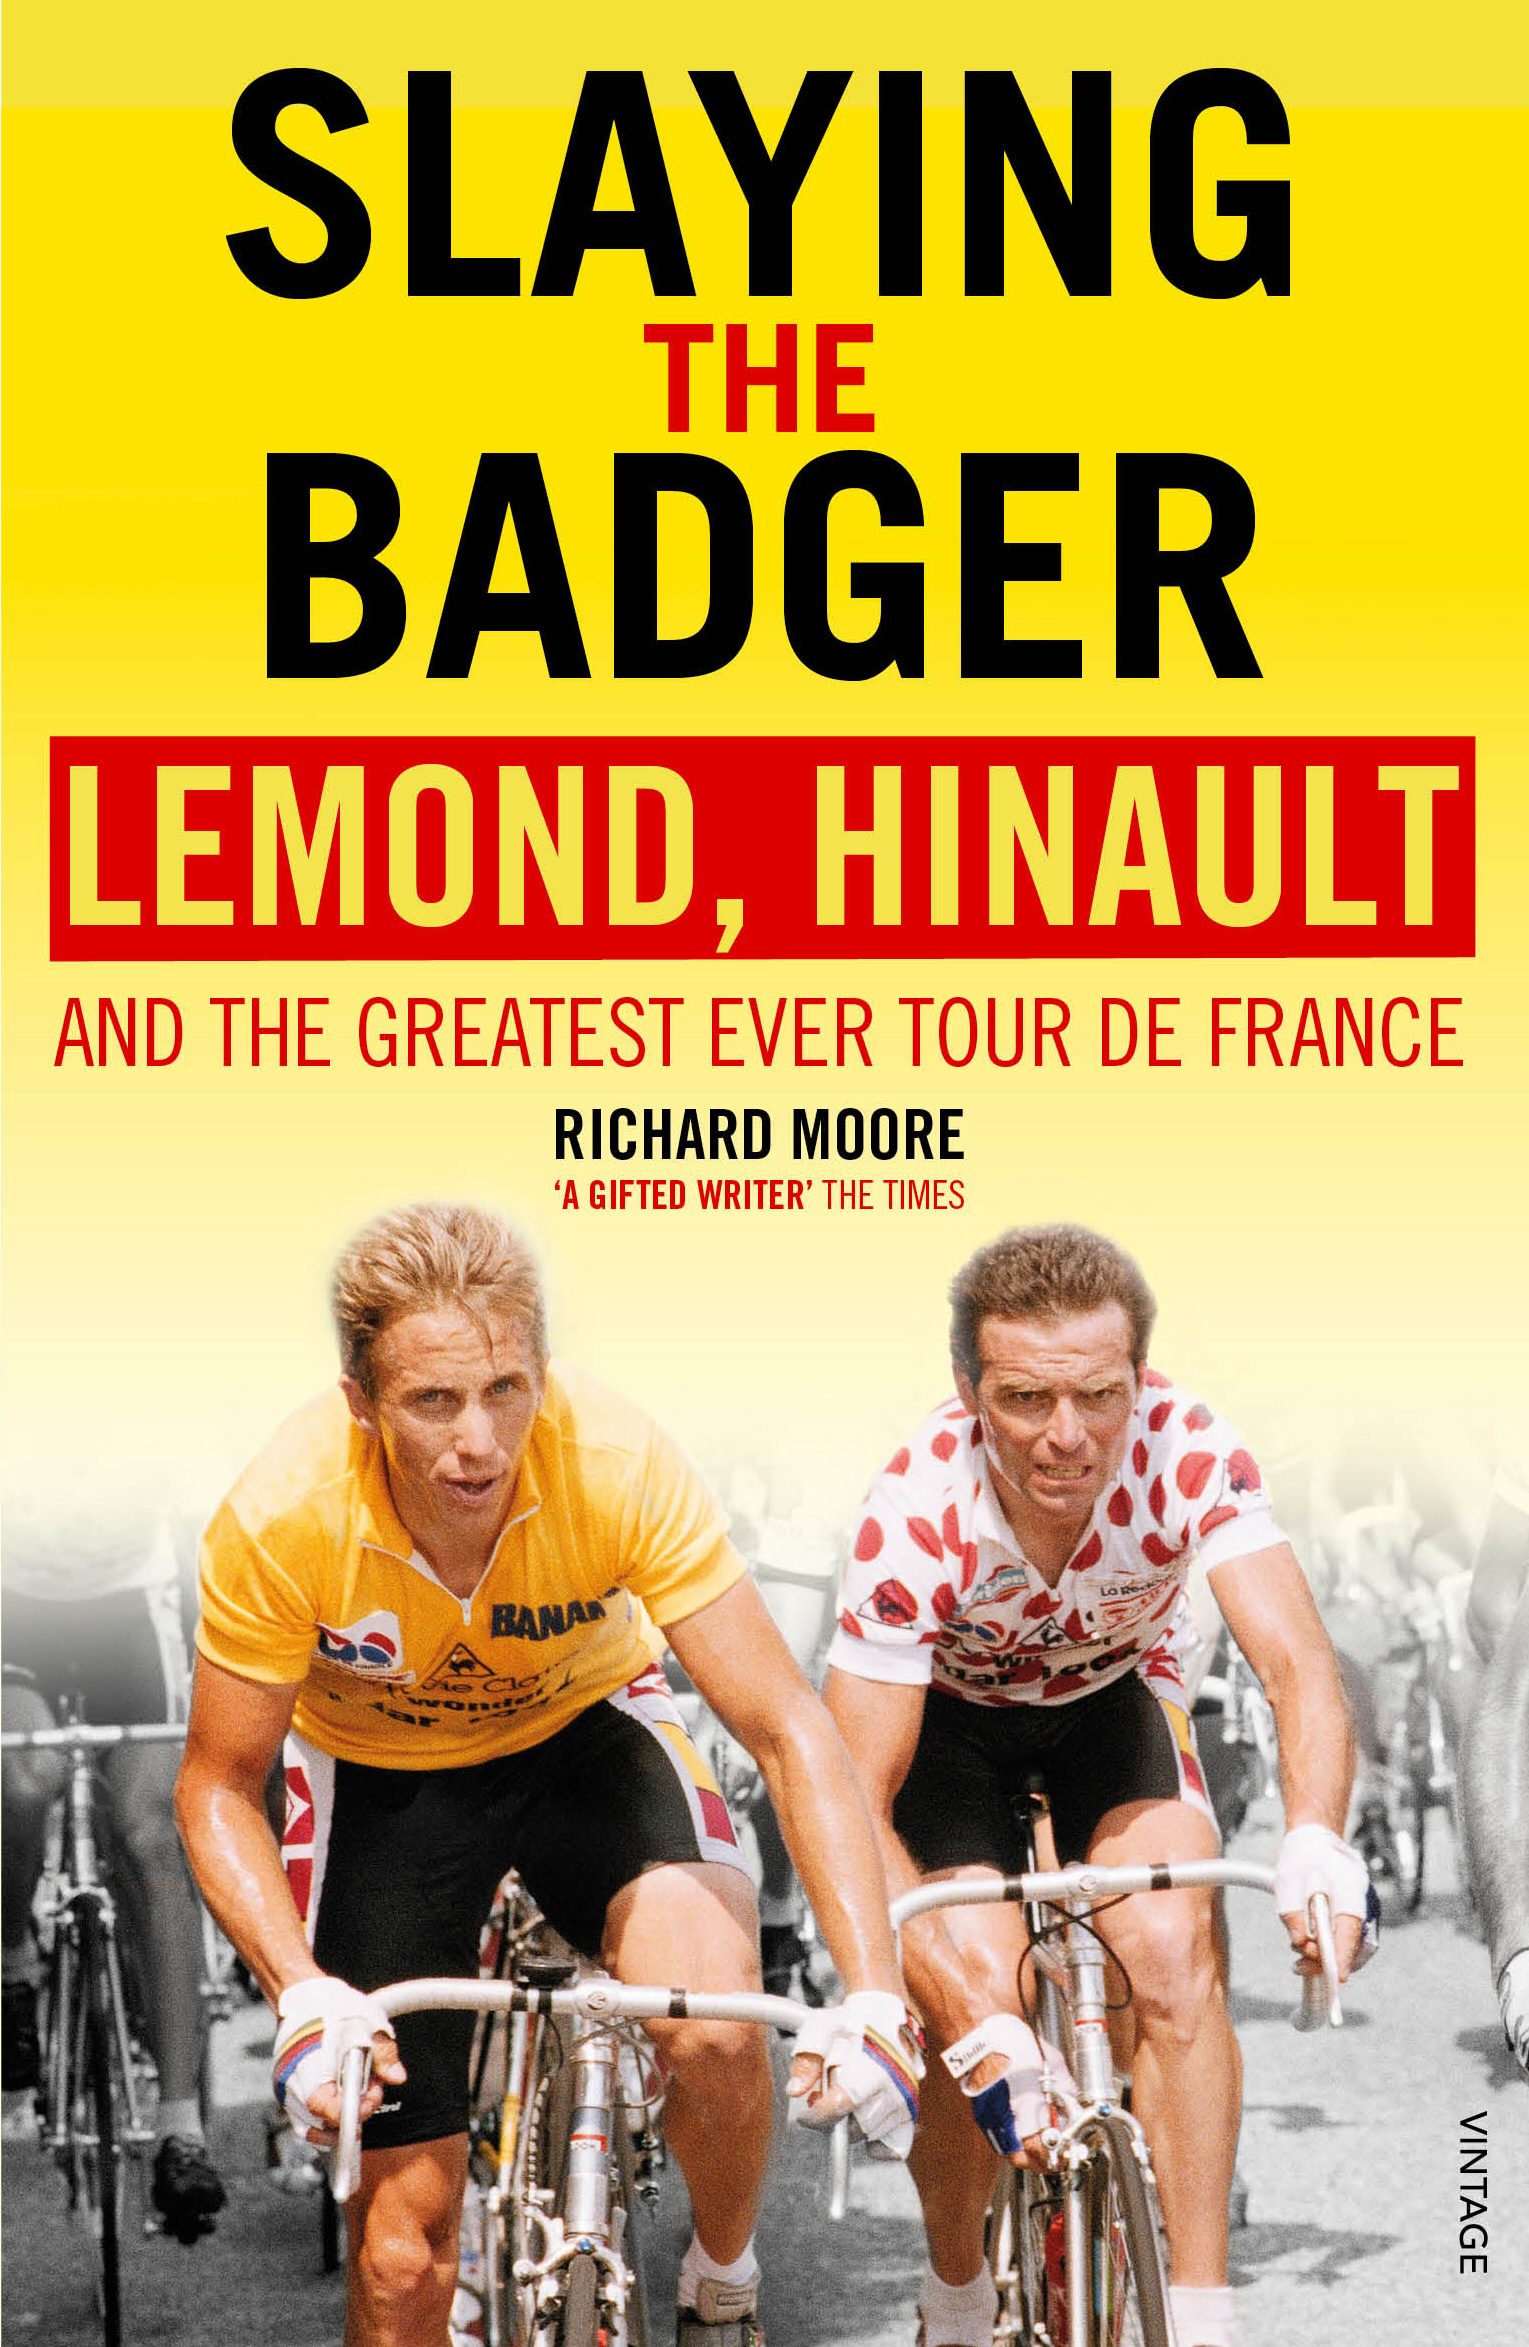 Slaying the Badger LeMond,  Hinault and the Greatest Ever Tour de France